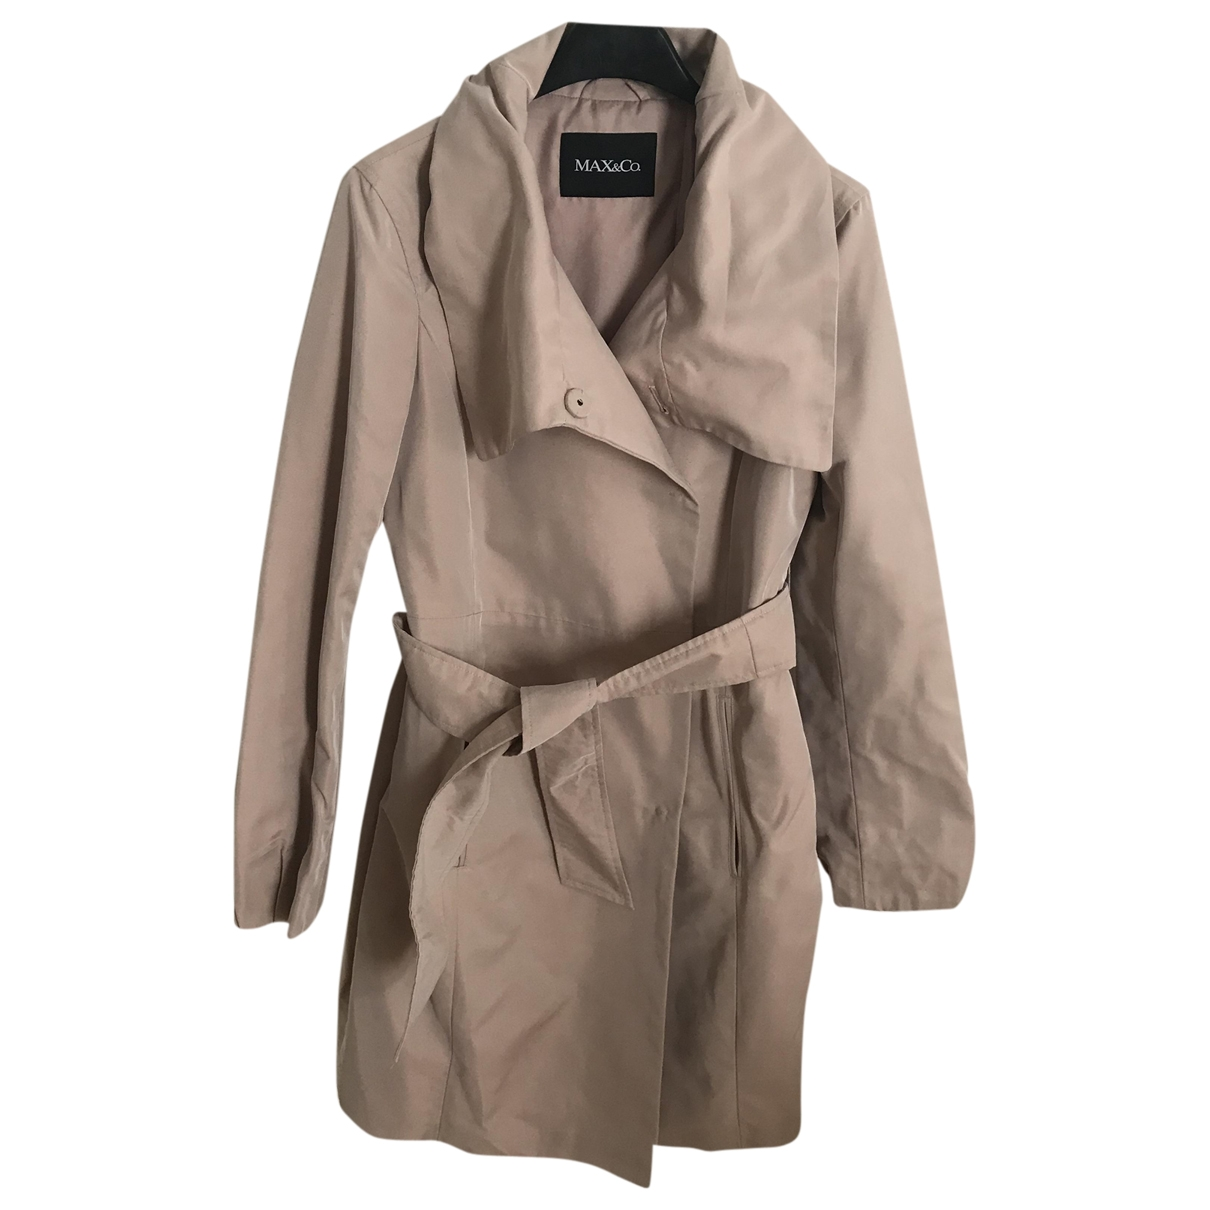 Max & Co \N Pink Trench coat for Women 36 FR